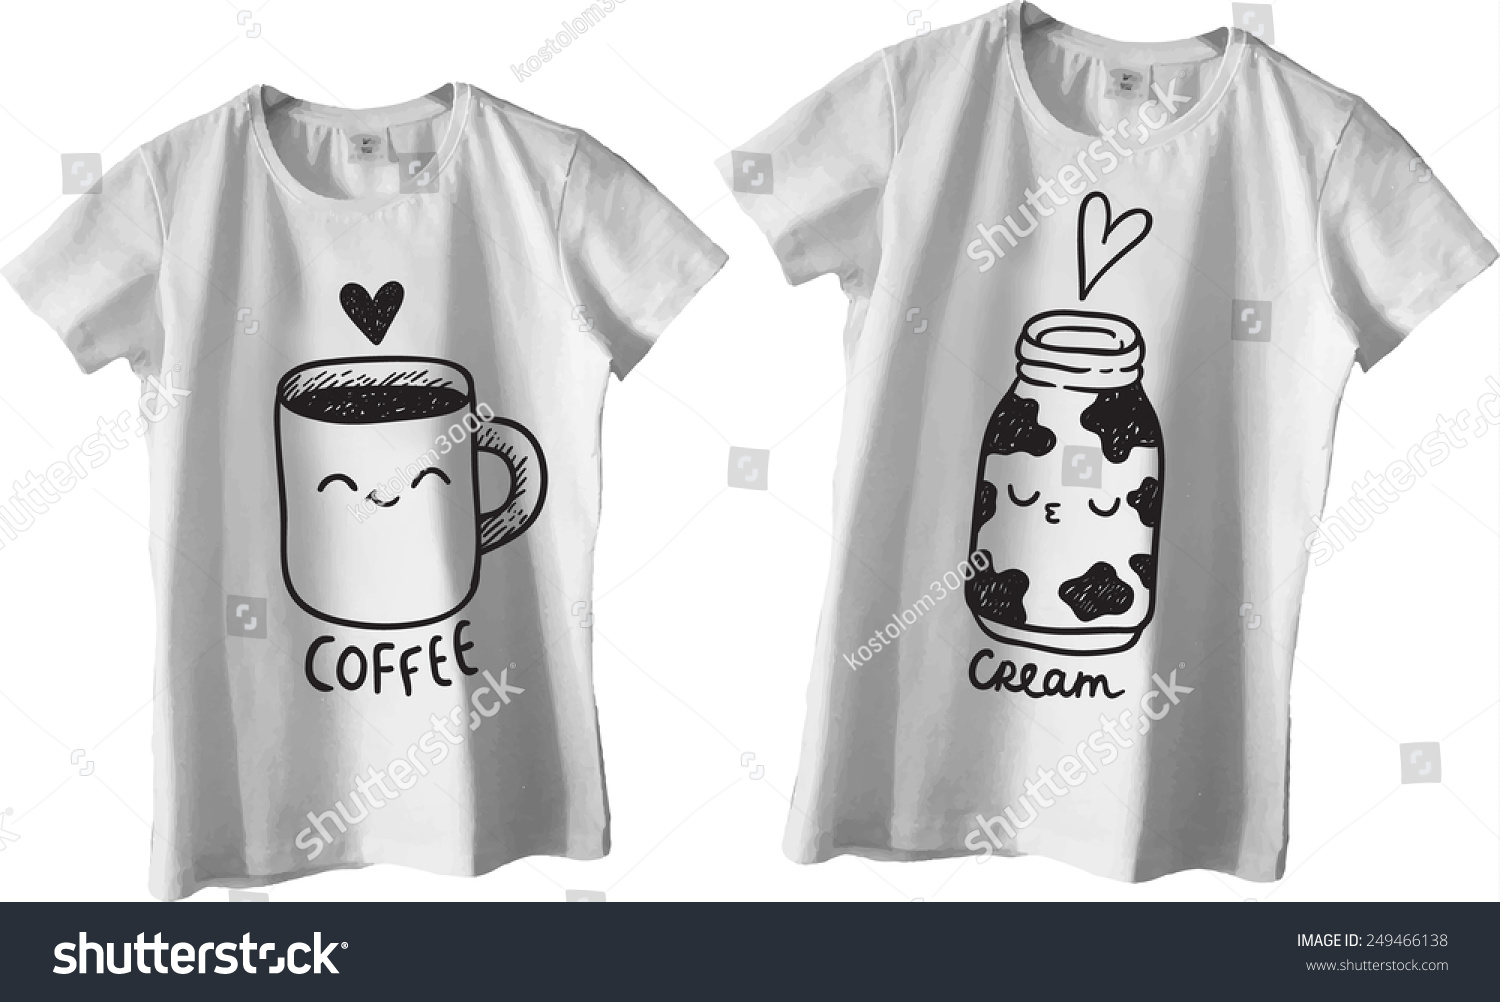 Design t shirt for couple - Cute Coffee And Cream St Valentines Design For Couple T Shirts